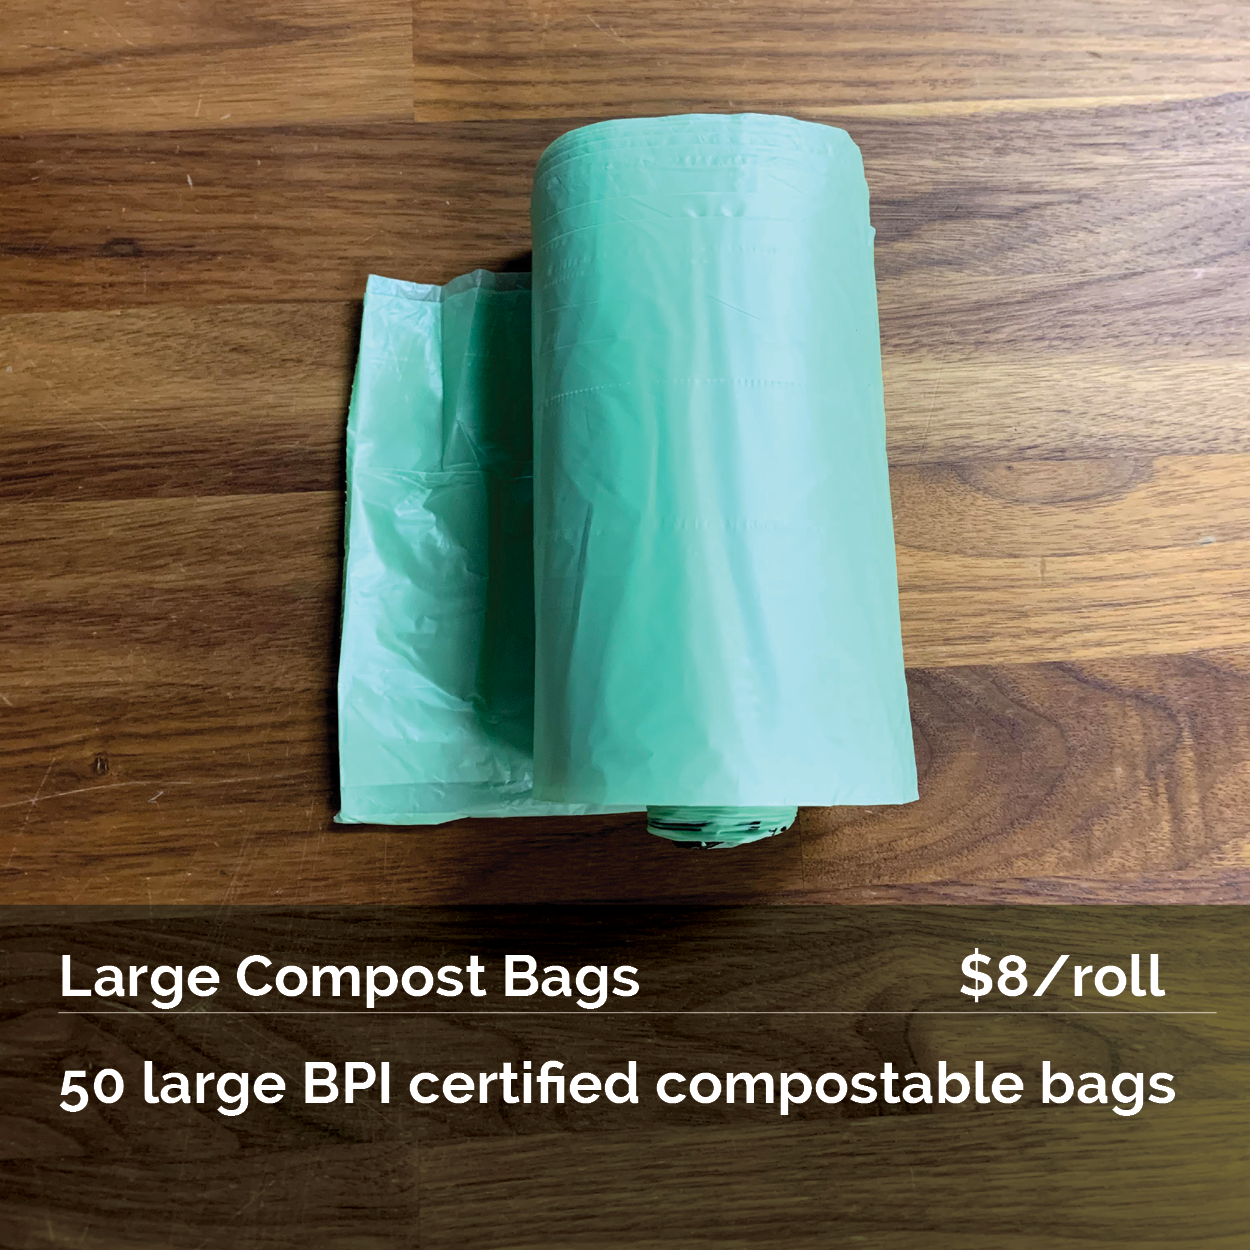 Large Compost Bags